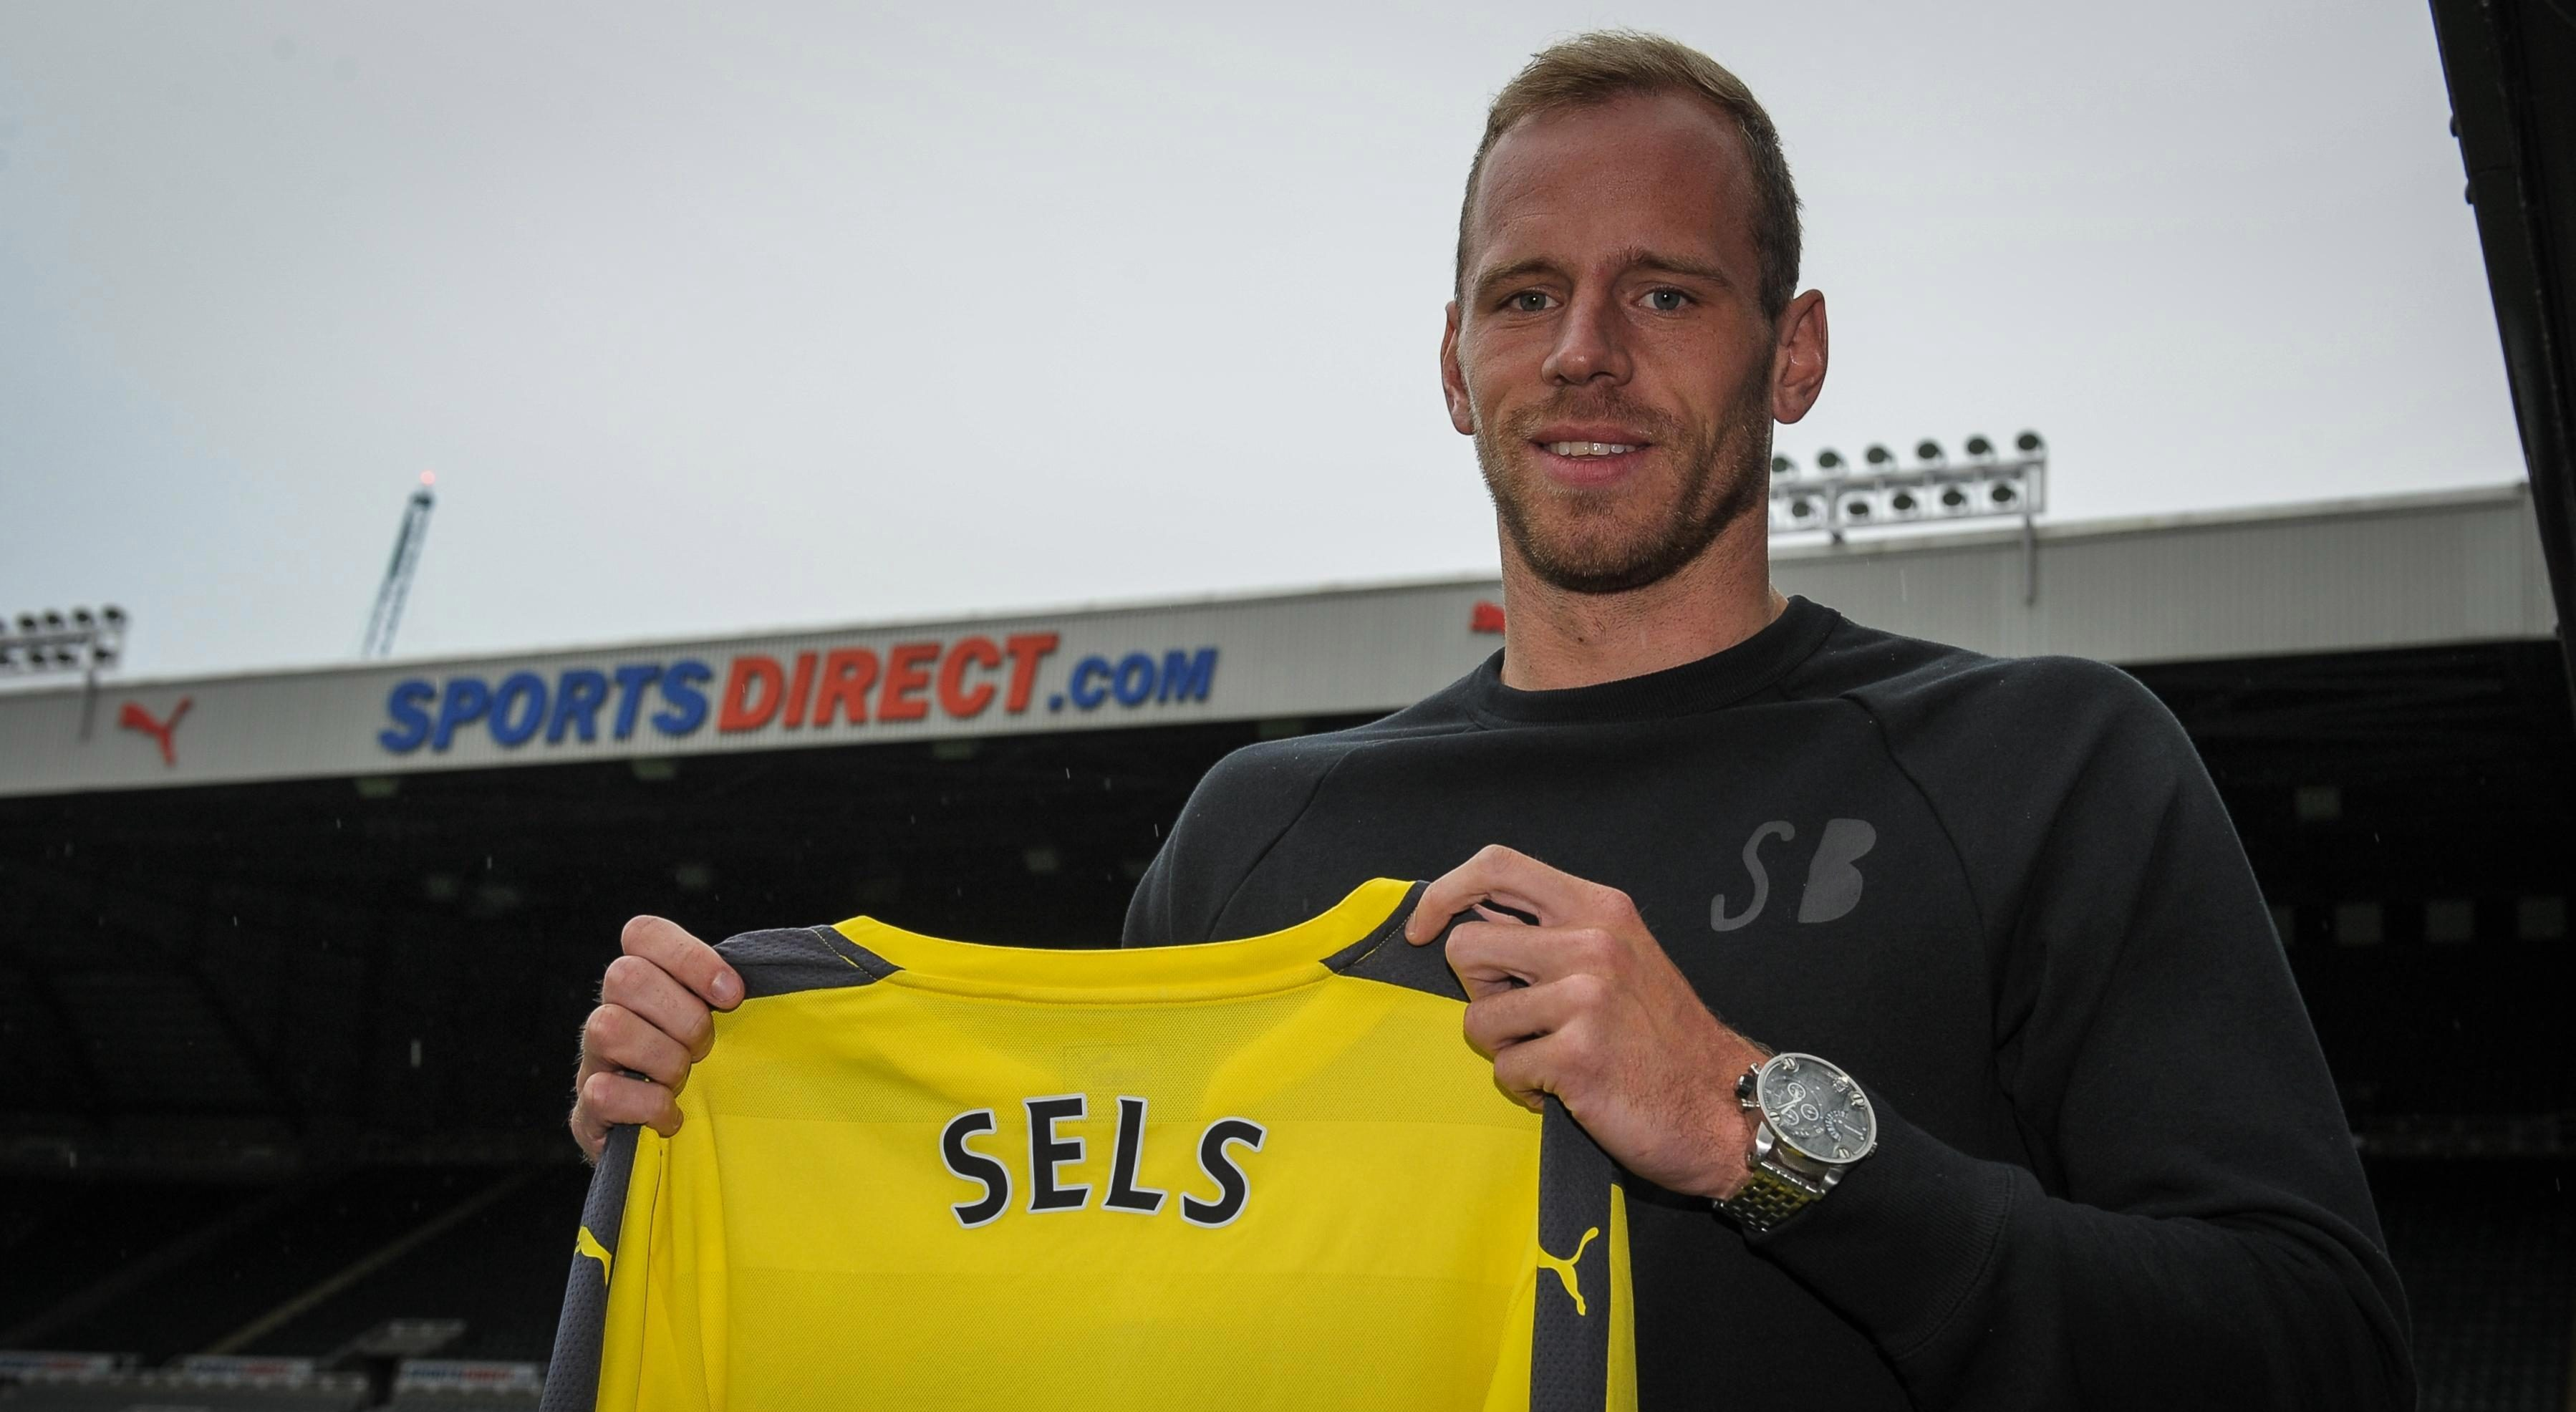 Sels, 26, joined Newcastle in 2016 but spent last season on loan at Anderlecht